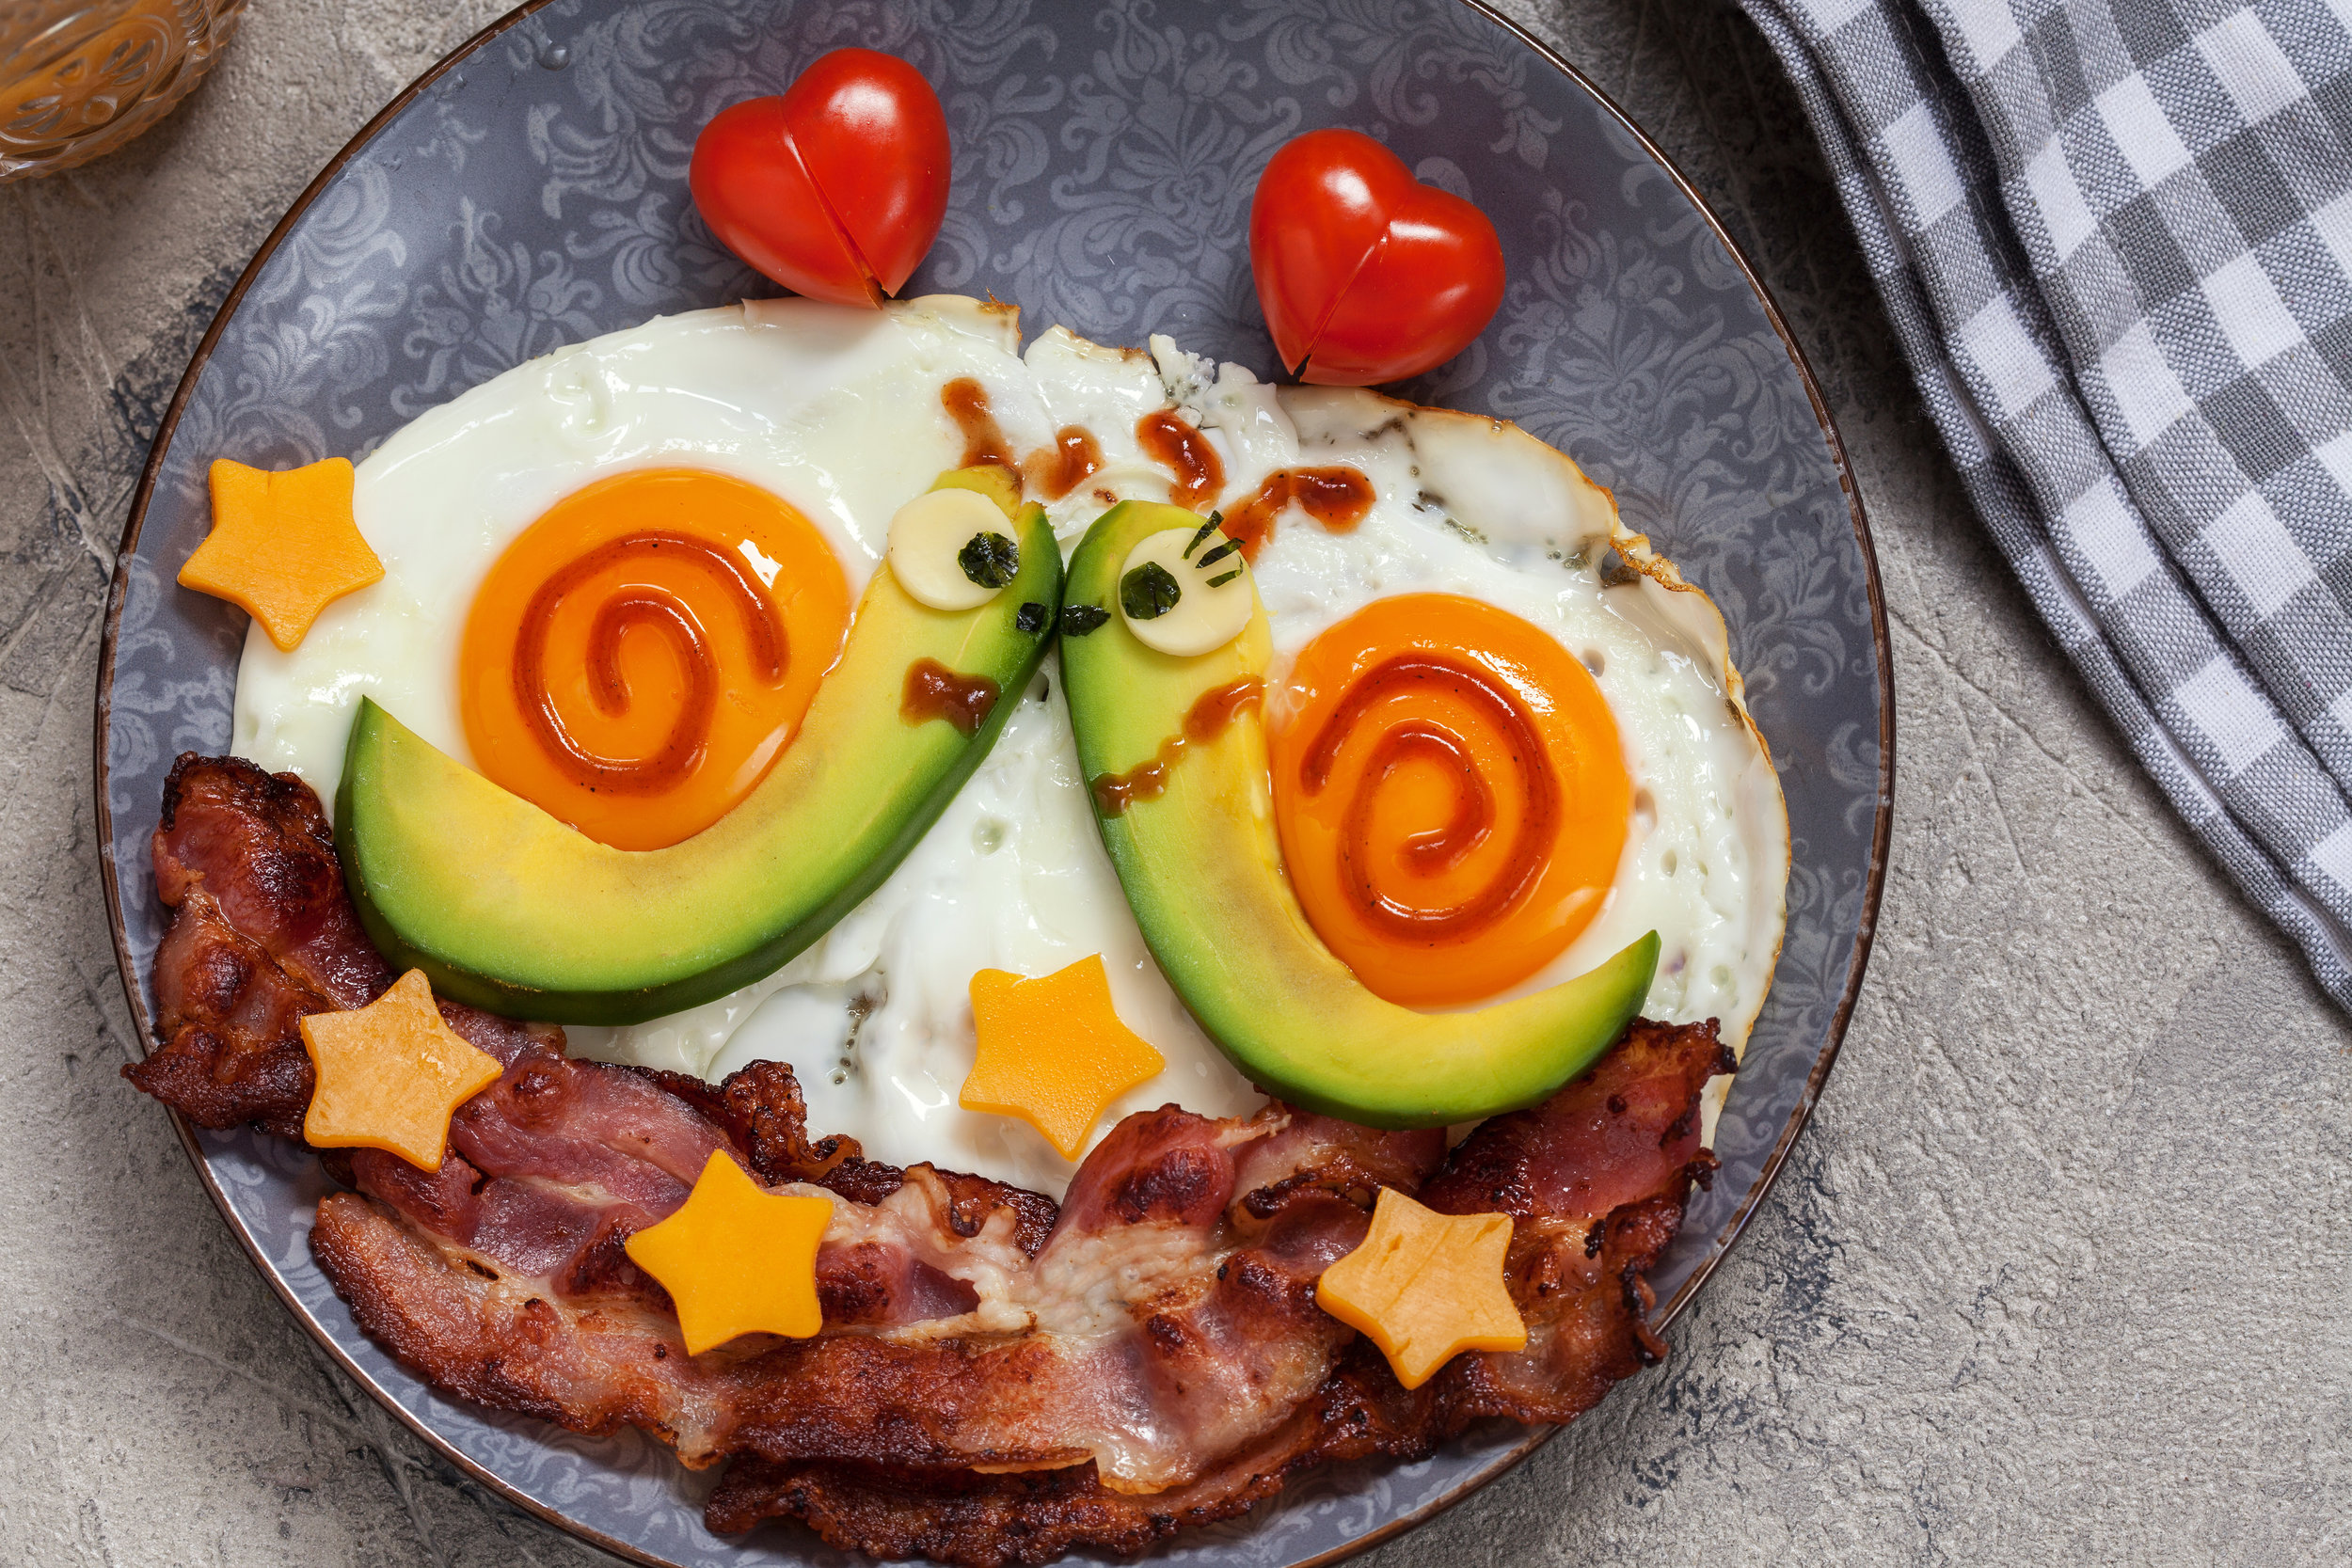 What Kind of Nutritional Strategy is Keto? - Low carbohydrate (<20g net carbs), moderate protein (based on height), and high fat (used as a lever for caloric deficit, maintenance, or lean mass gain).